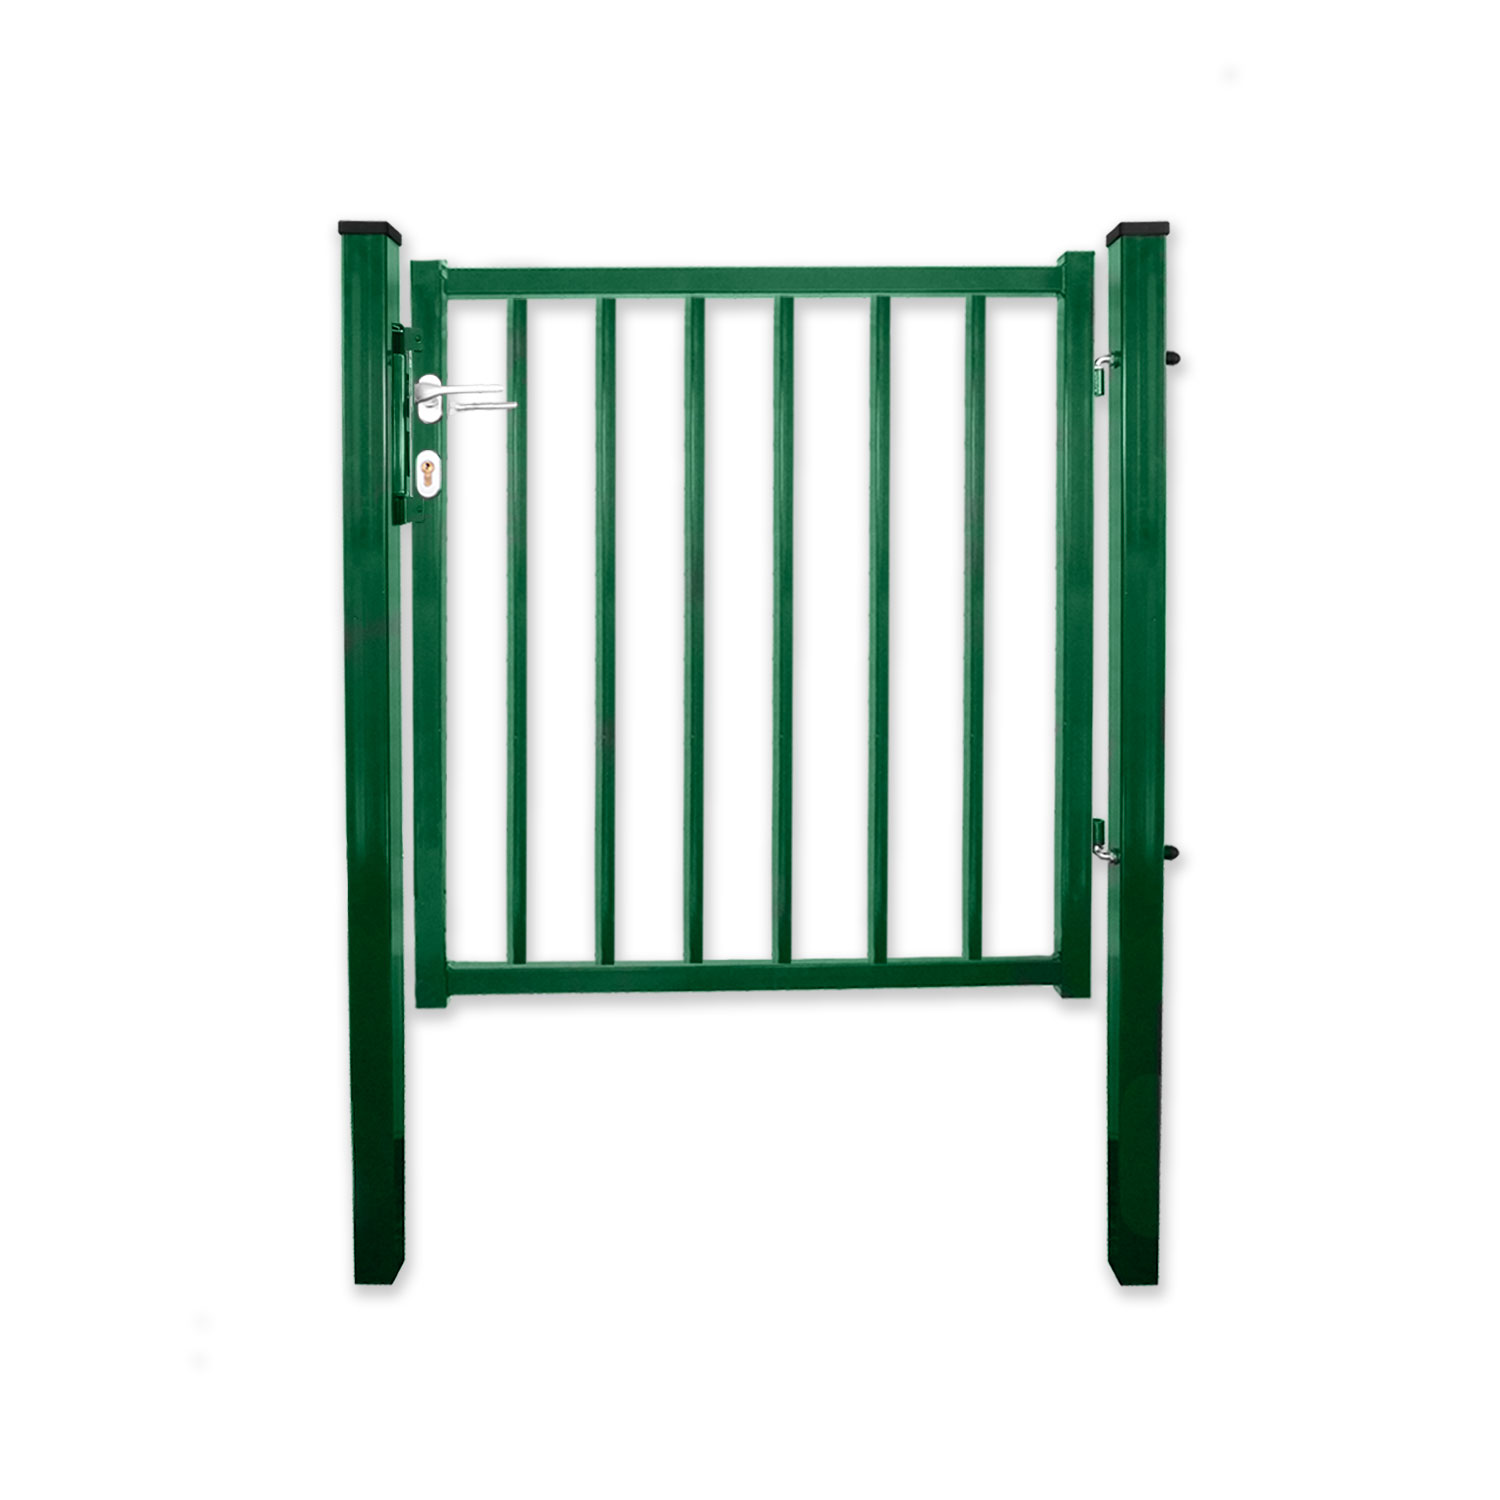 - Destockage - Portillon standard  barreaudé vert largeur 1m50